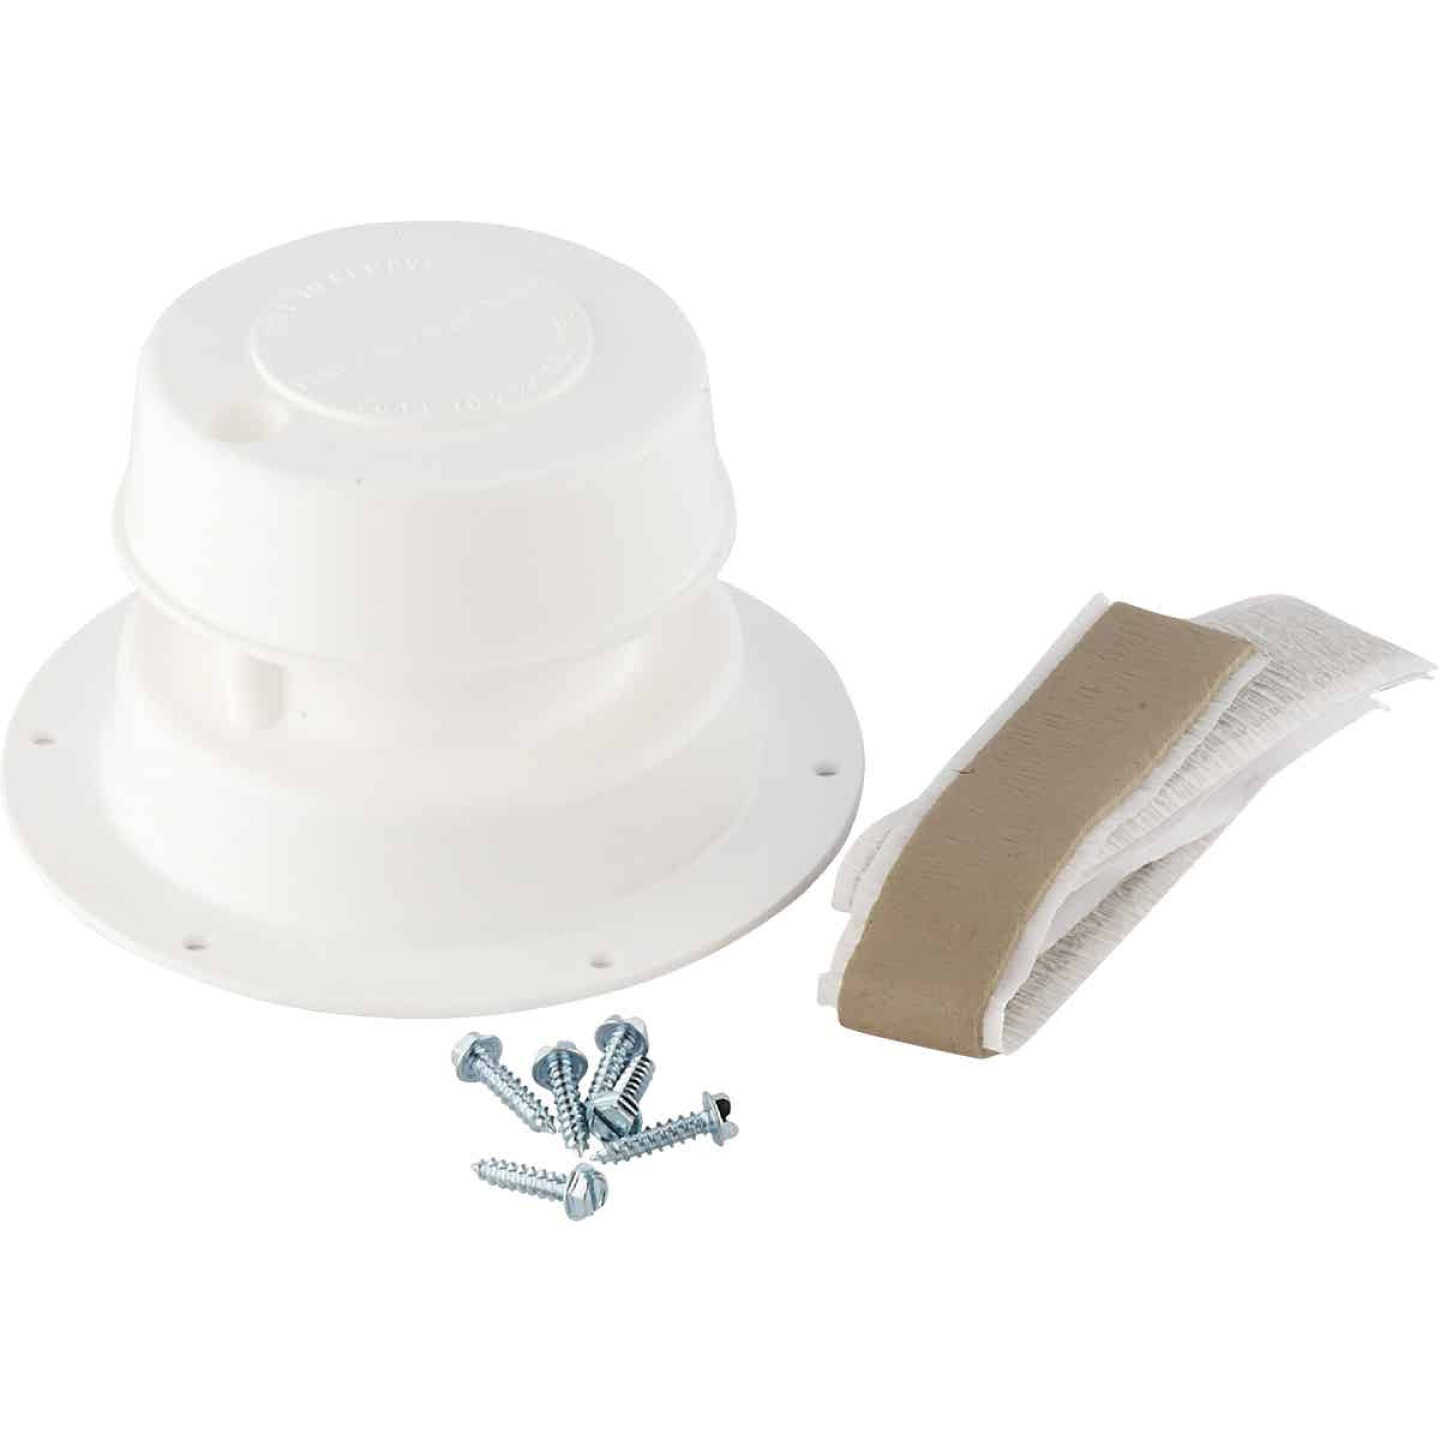 Camco 1 In. to 2-3/8 In. Replace-All Plumbing RV Vent Cap Kit Image 1